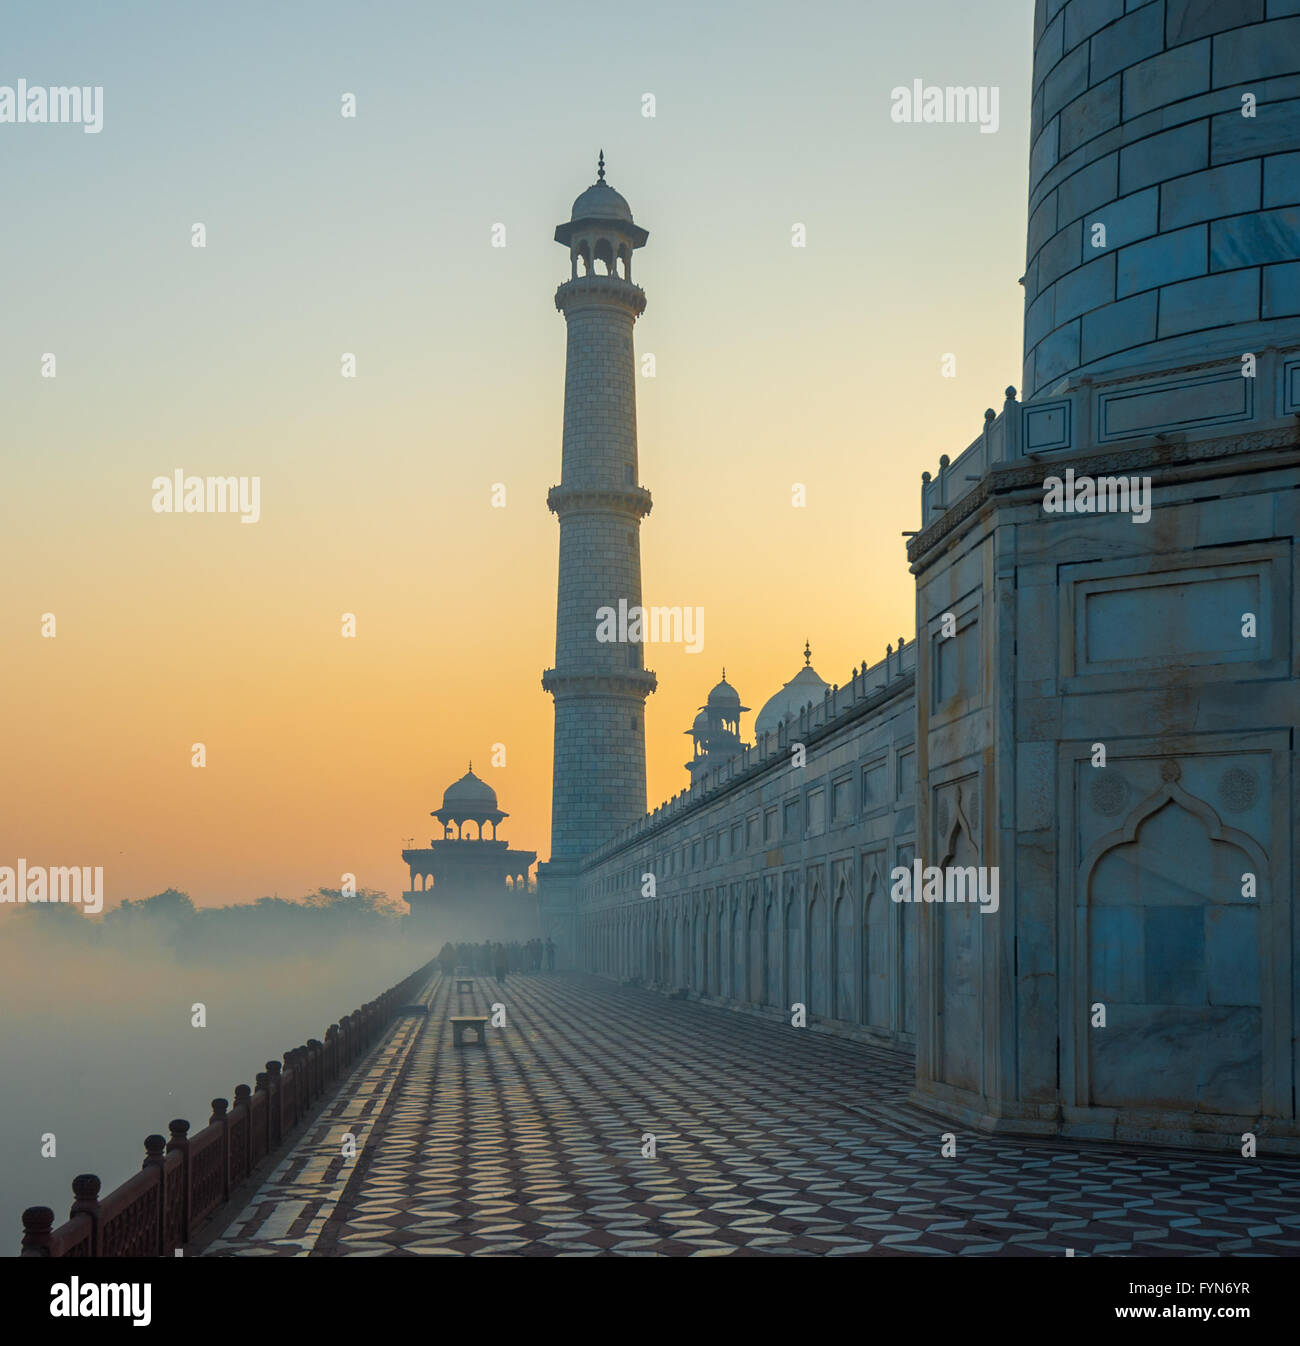 Taj Mahal di sunrise, Agra, India Immagini Stock